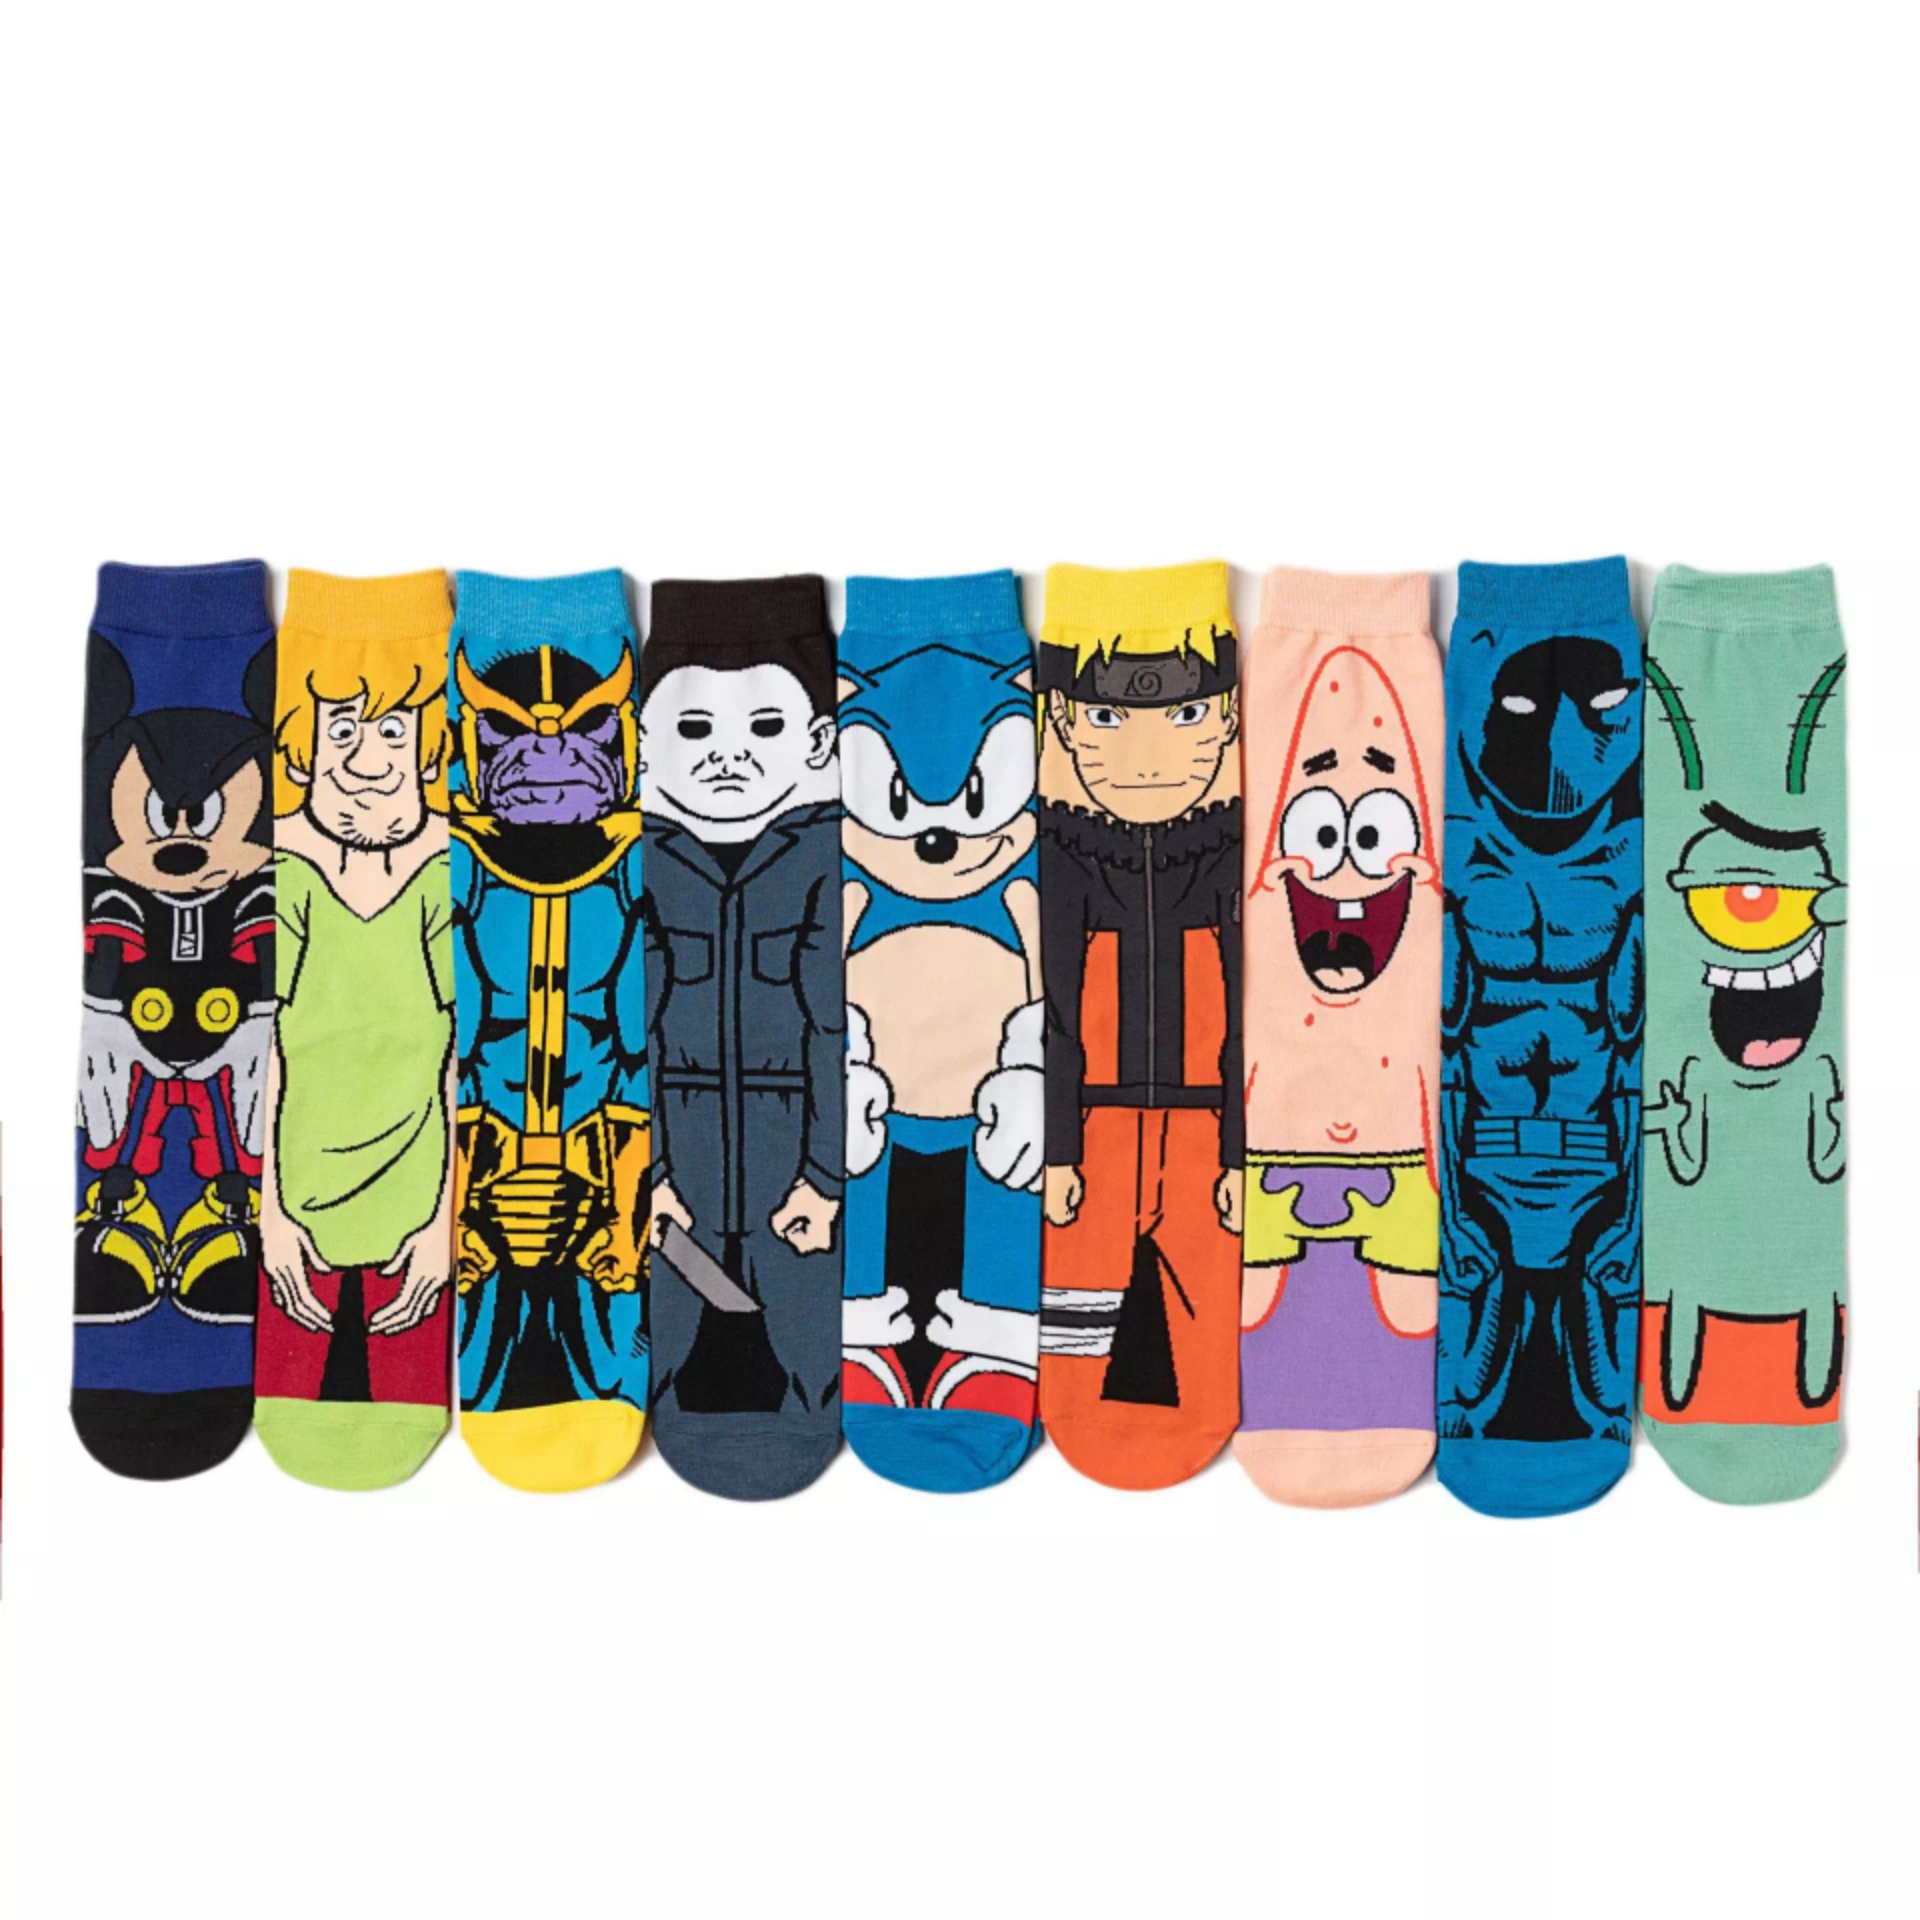 Good Quality Men's Happy Socks Cartoon Characters Thanos Naruto Sonic The Hedgehog Socks 8colors Men Spring Autumn Winter